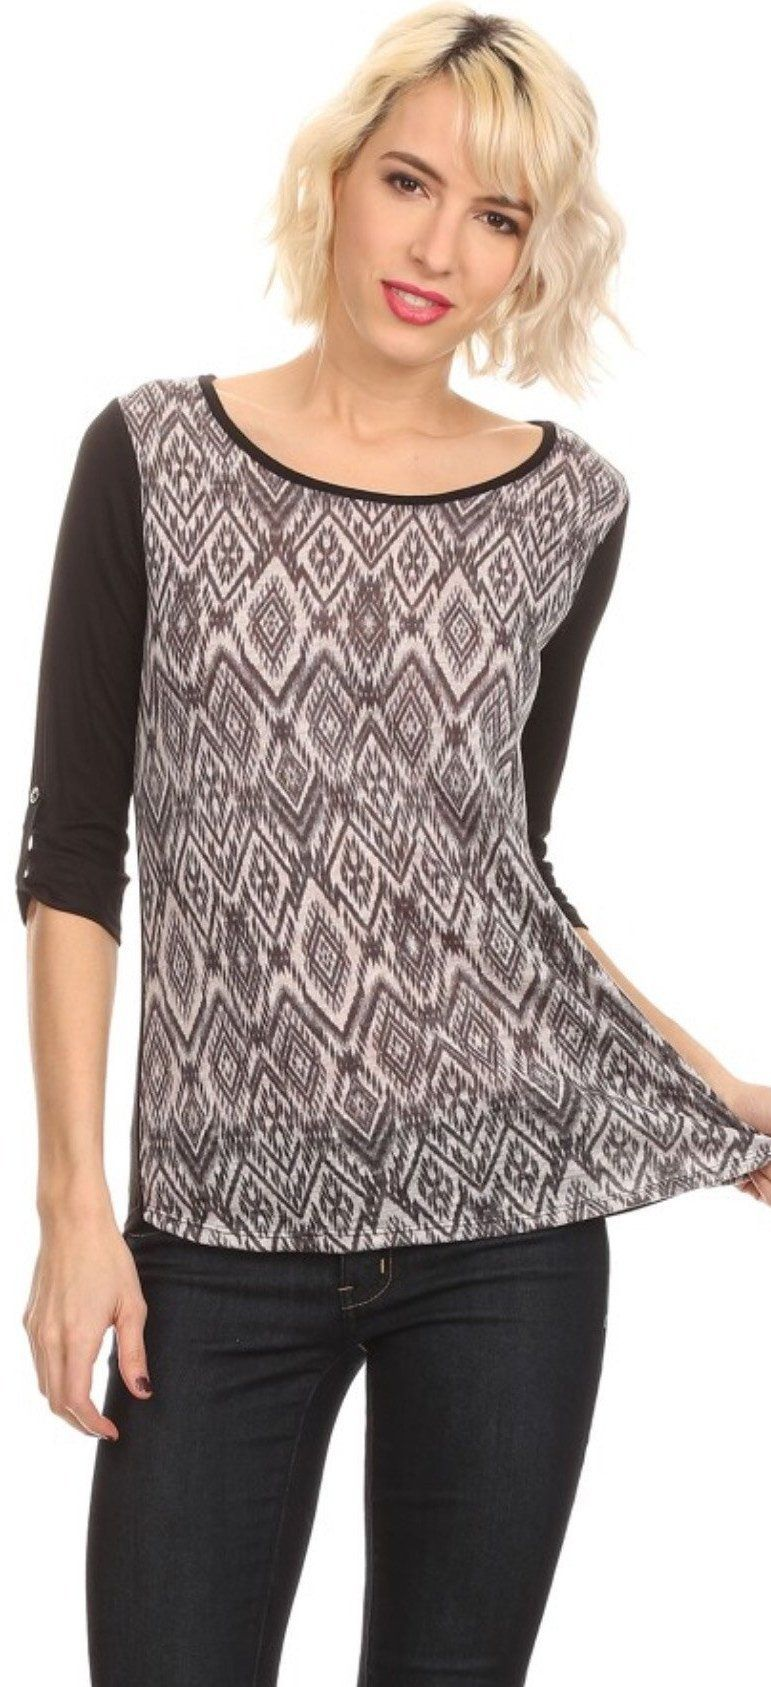 Womens Tunic Top 3/4 Sleeves Diamond Print, Black/Gray,  S/M/L Lularoe Randy